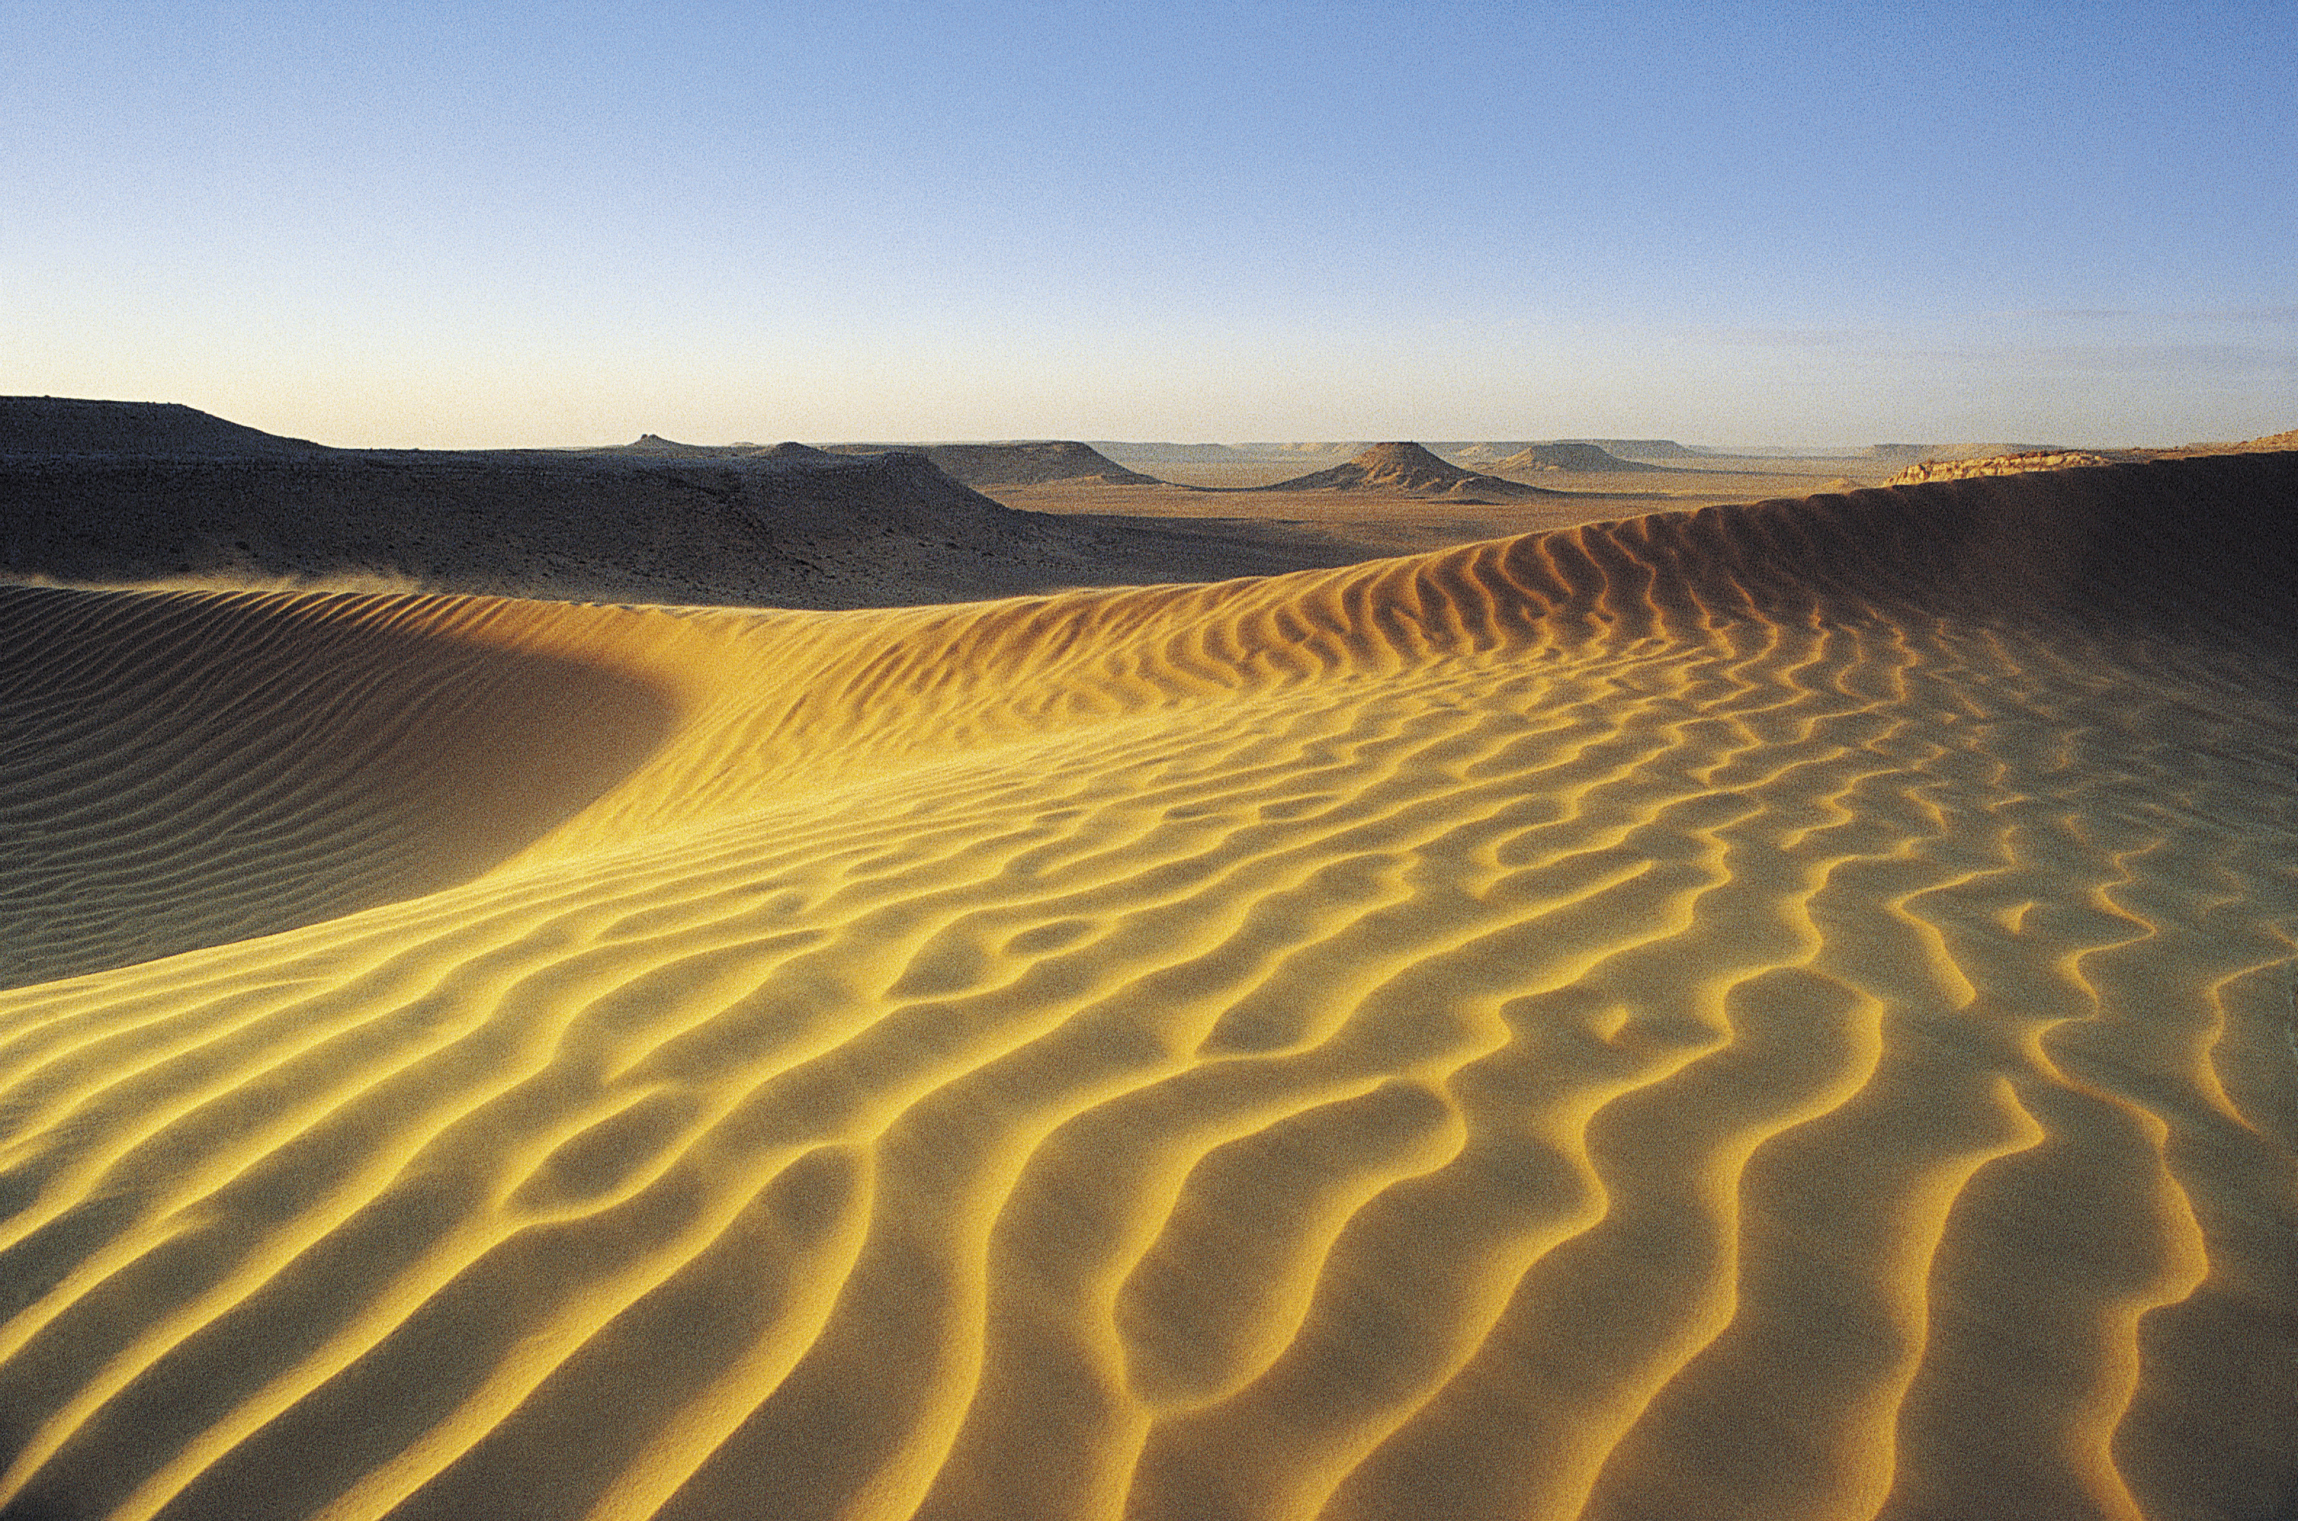 The Topography of Deserts | Sciencing